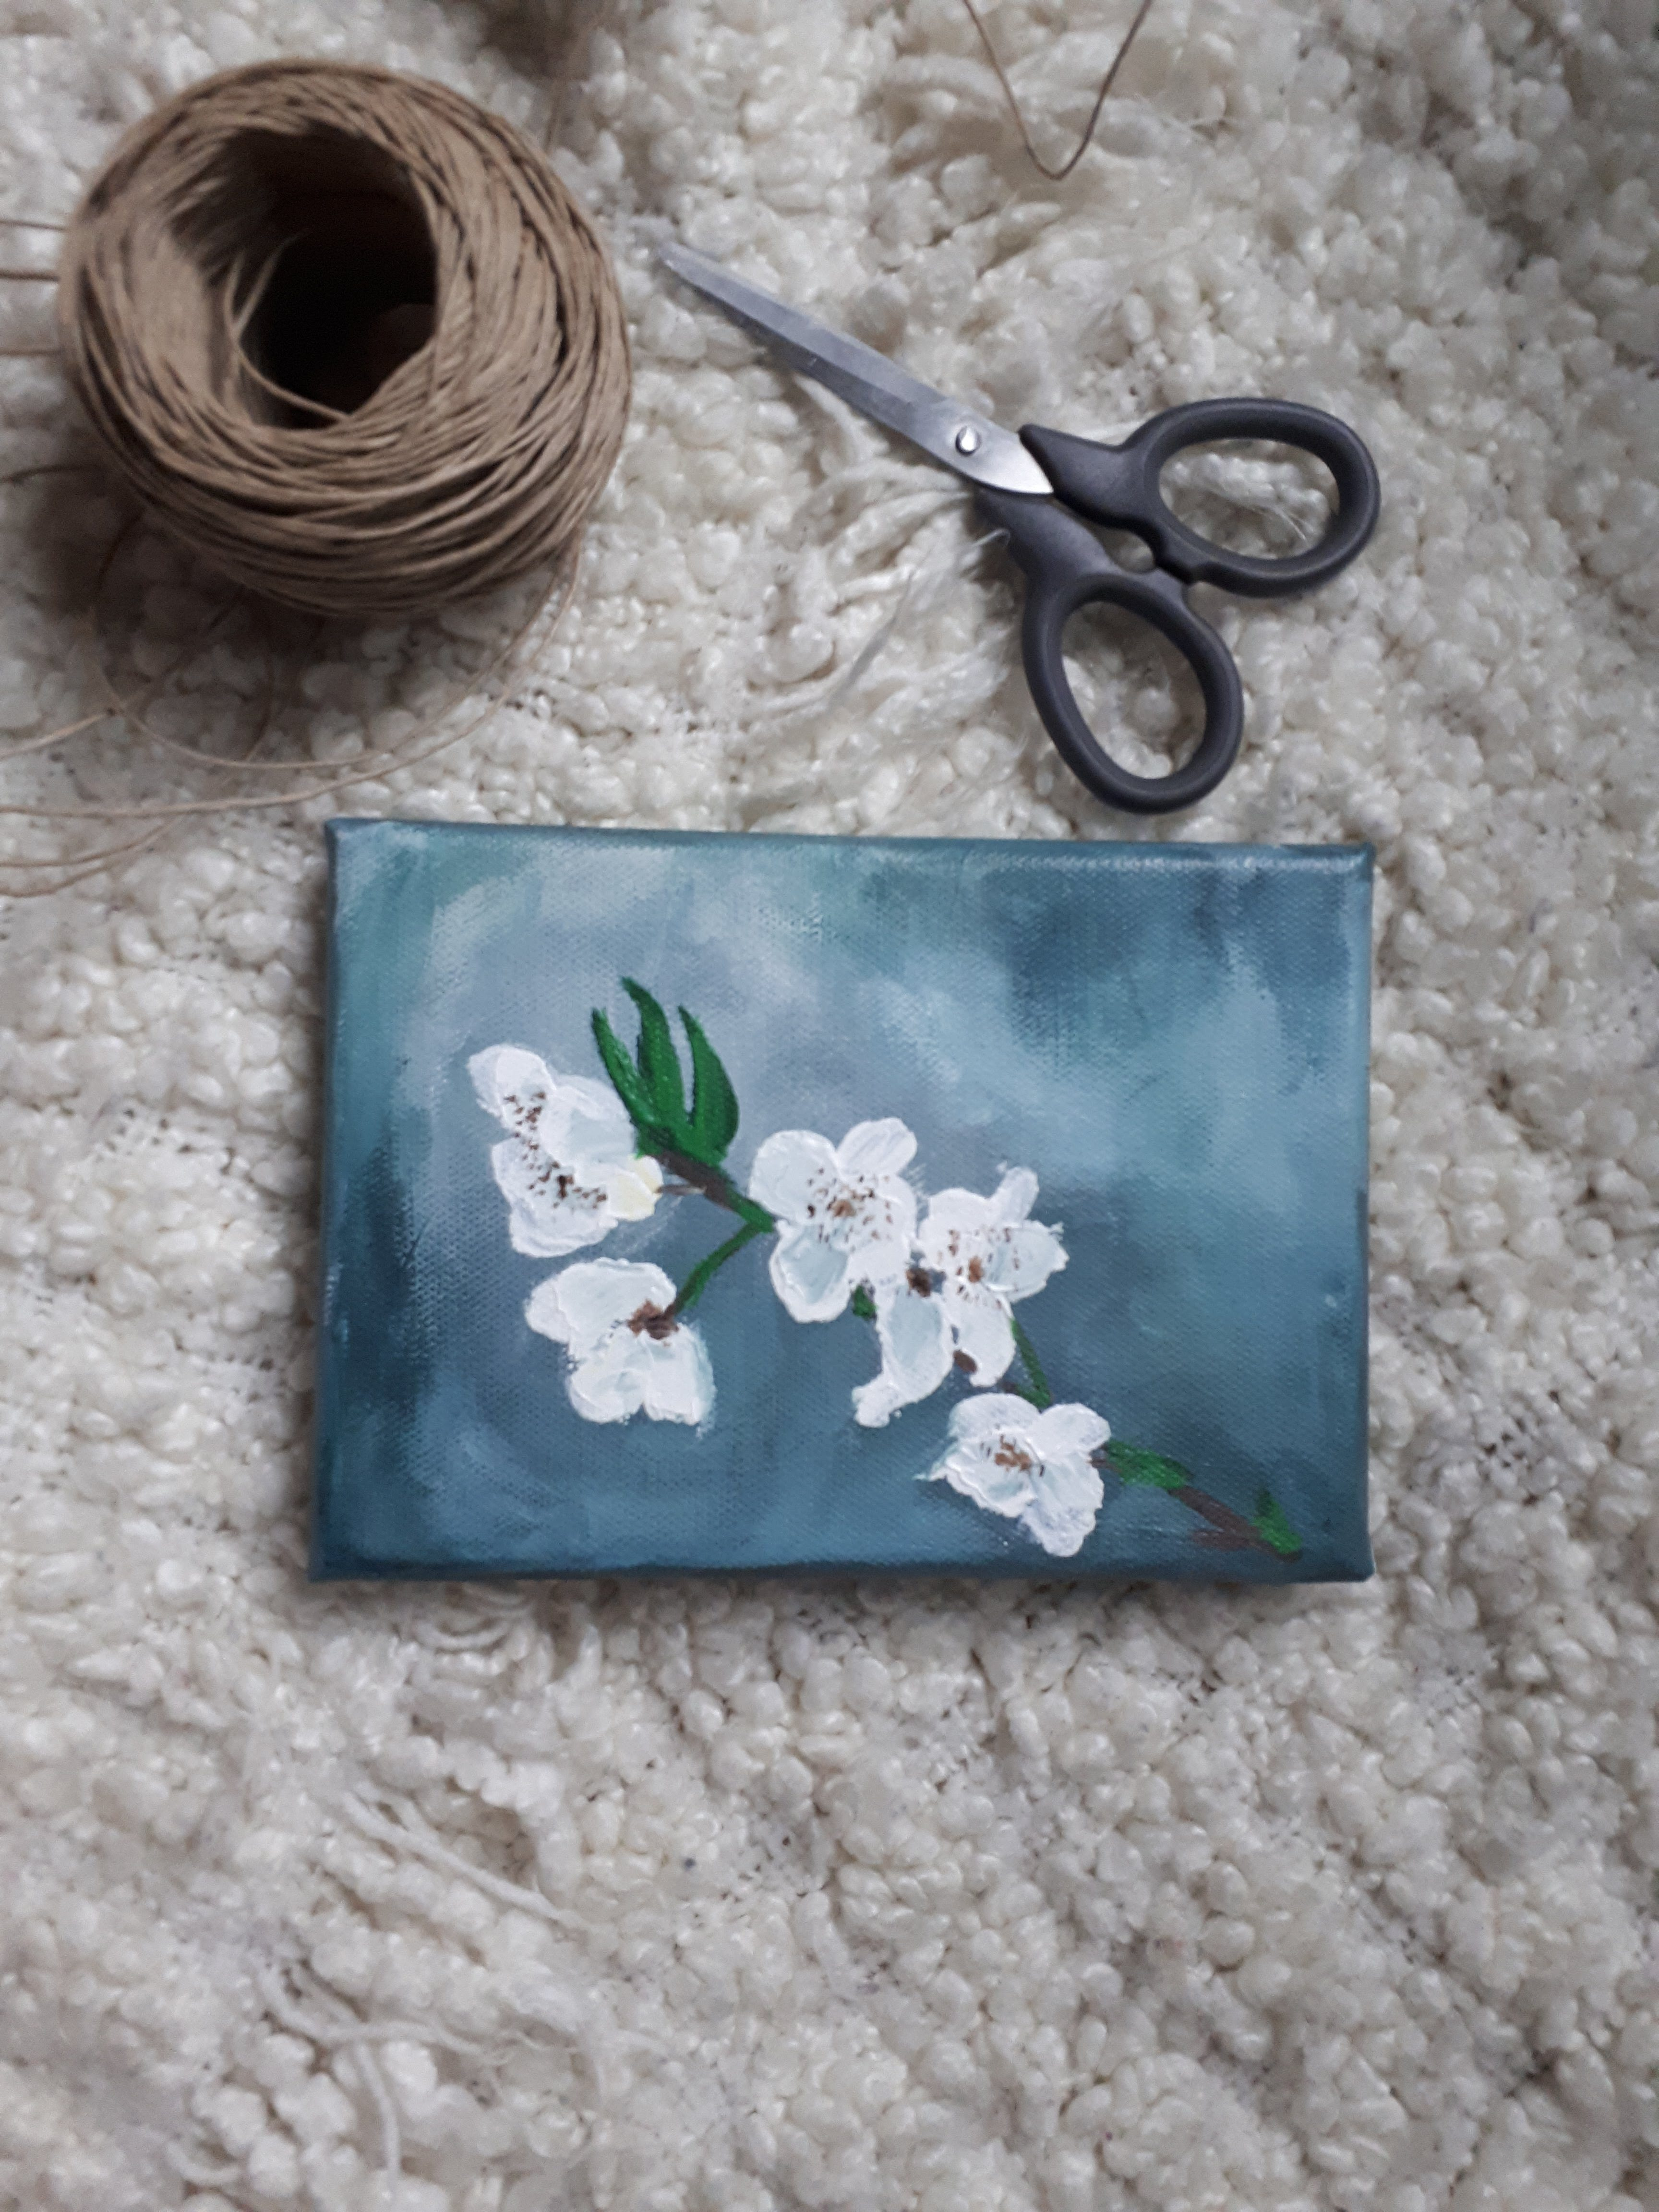 abstract impressionist Original Painting Acrylic on Fine Art Paper White Cherry Blossoms flower art botanical paintings Home Decor Wall Art